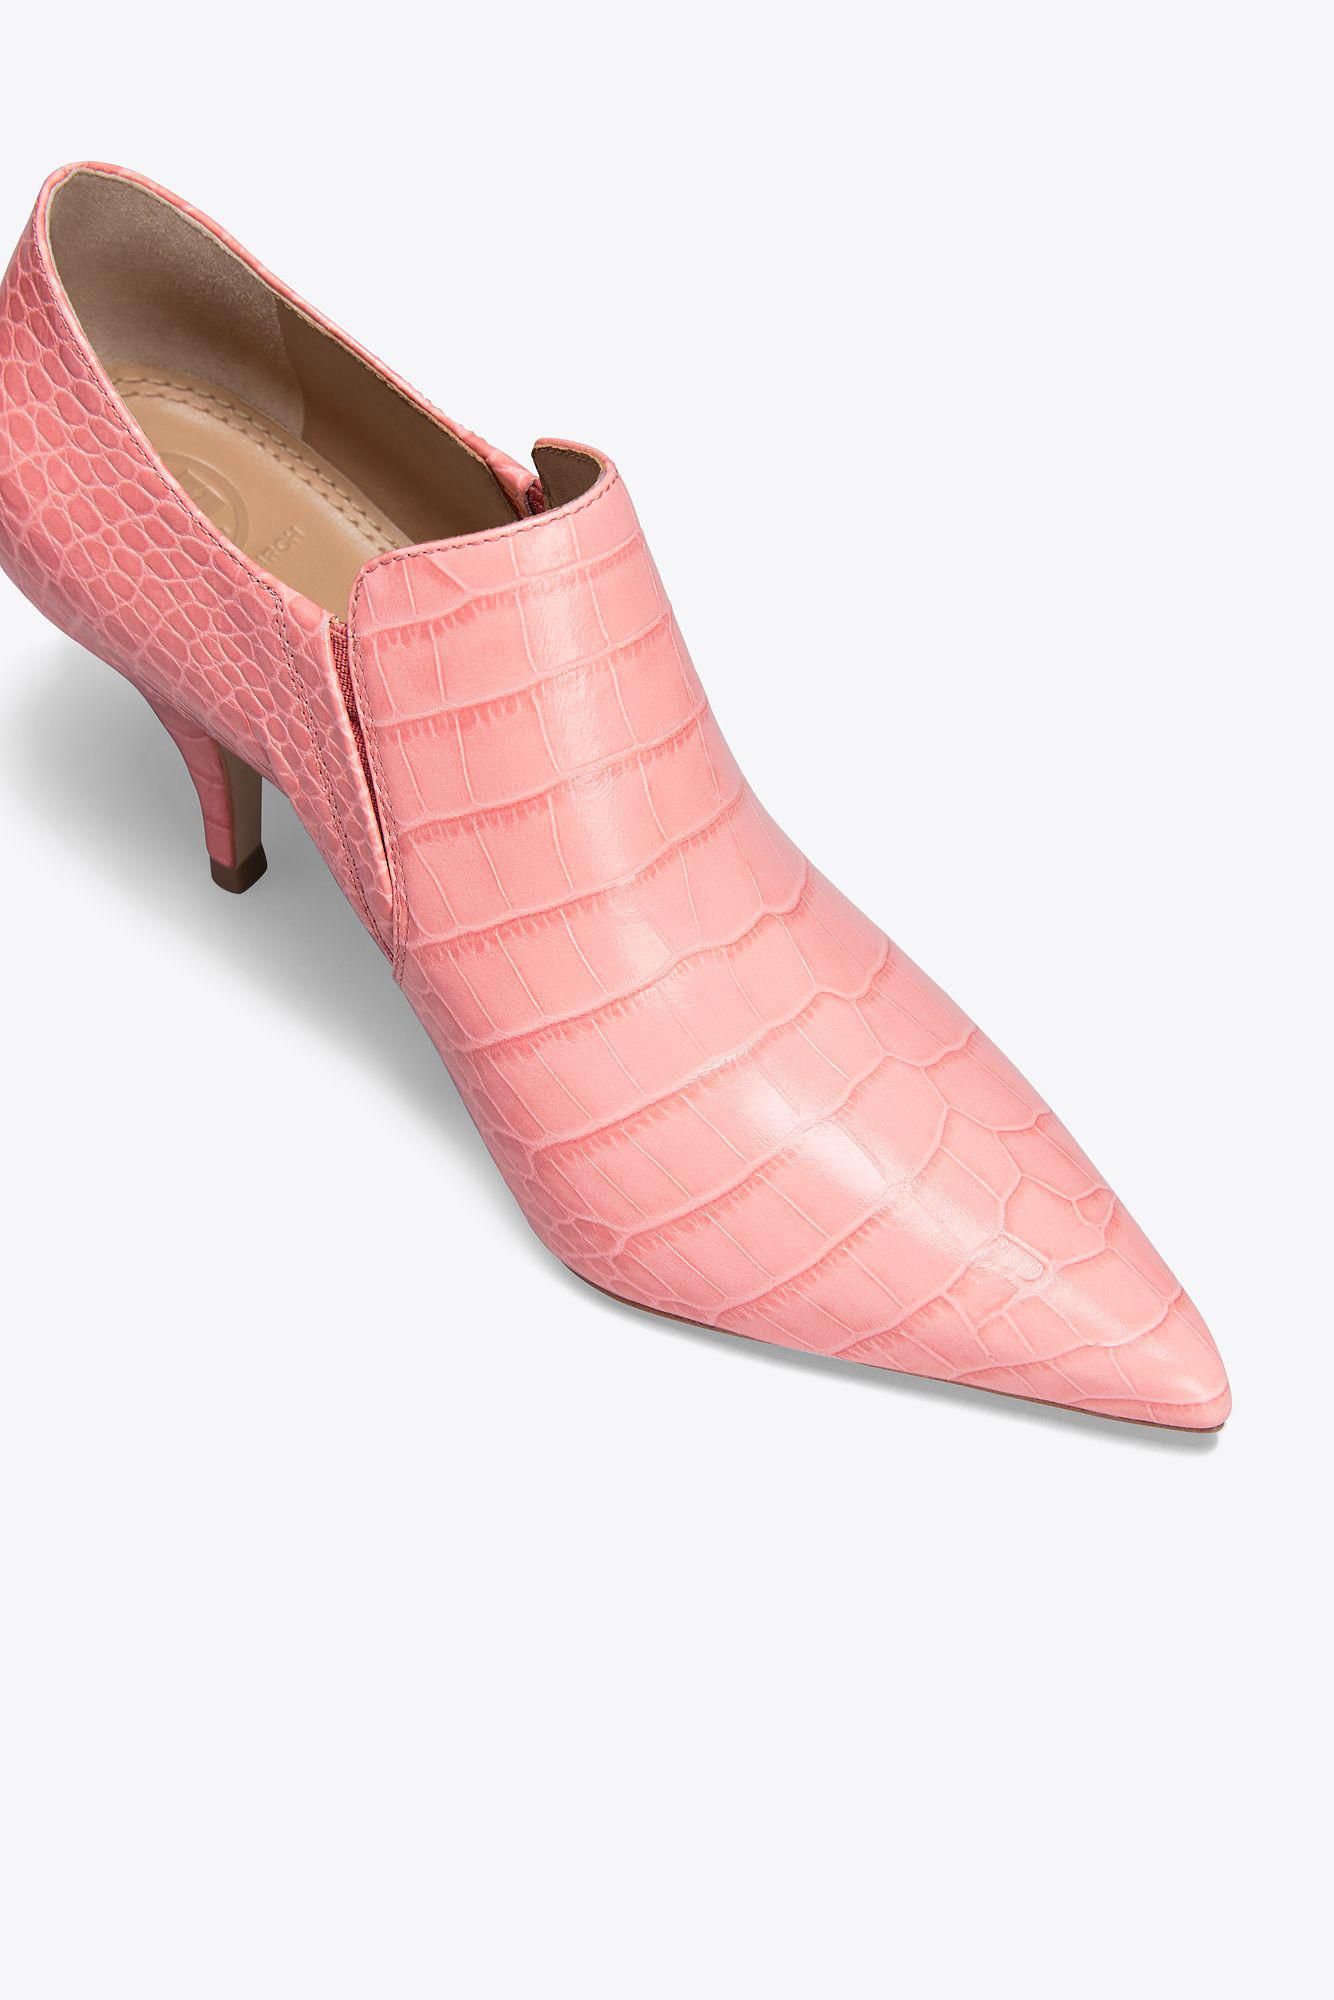 f91f1a951b9d View fullscreen thoughts on 5cd10  Tory Burch - Pink Georgina Embossed Ankle  Bootie - Lyst. View fullscreen best online 35be5 ...